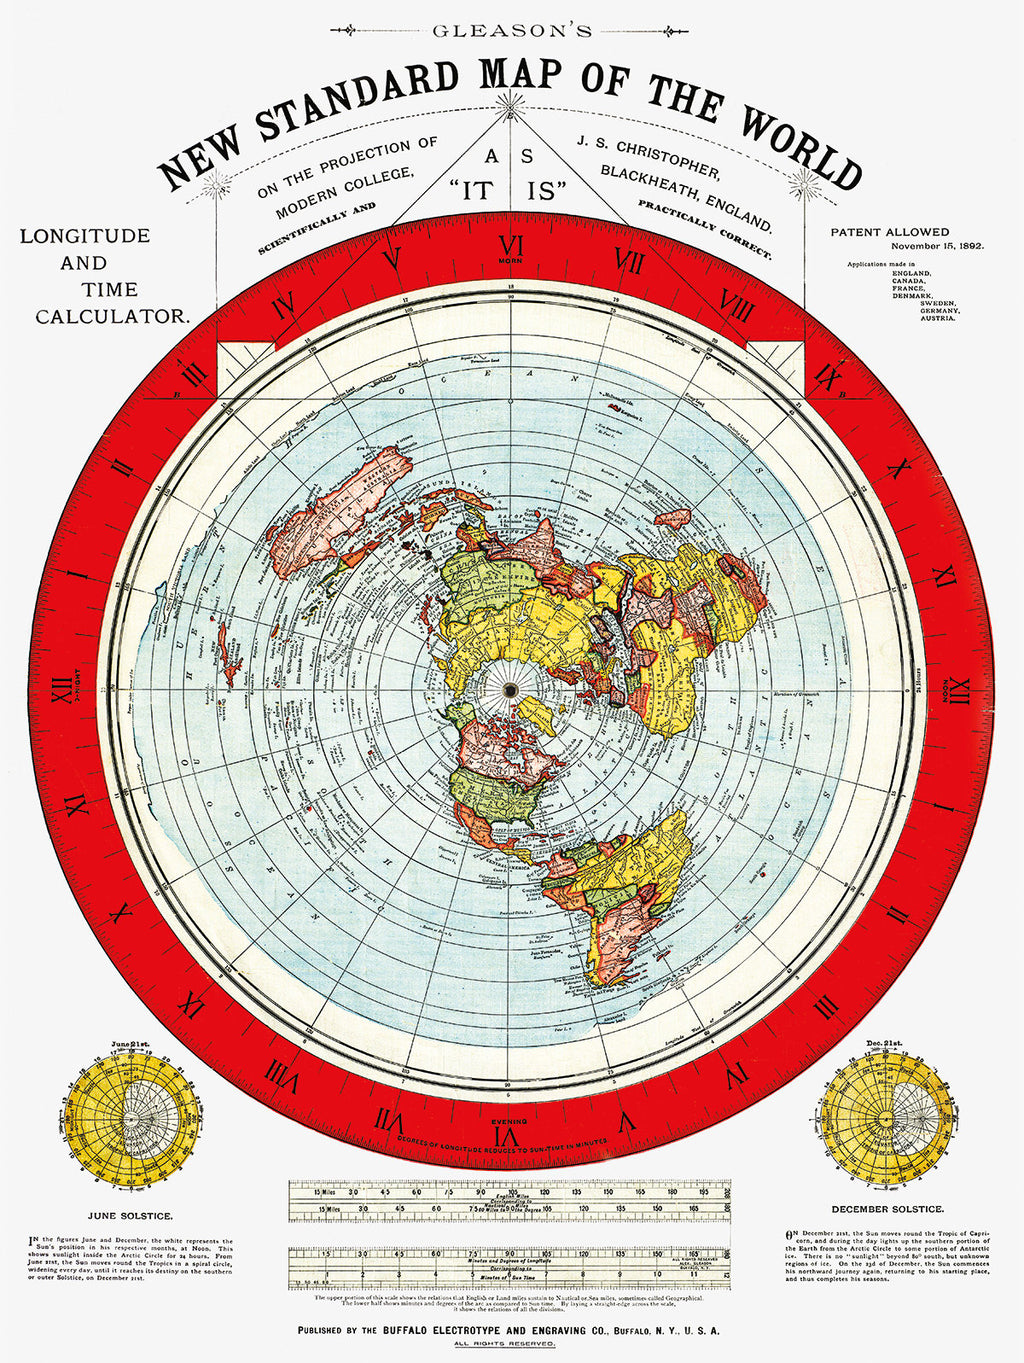 1892 Gleason's New Standard Map Of The World - femerch